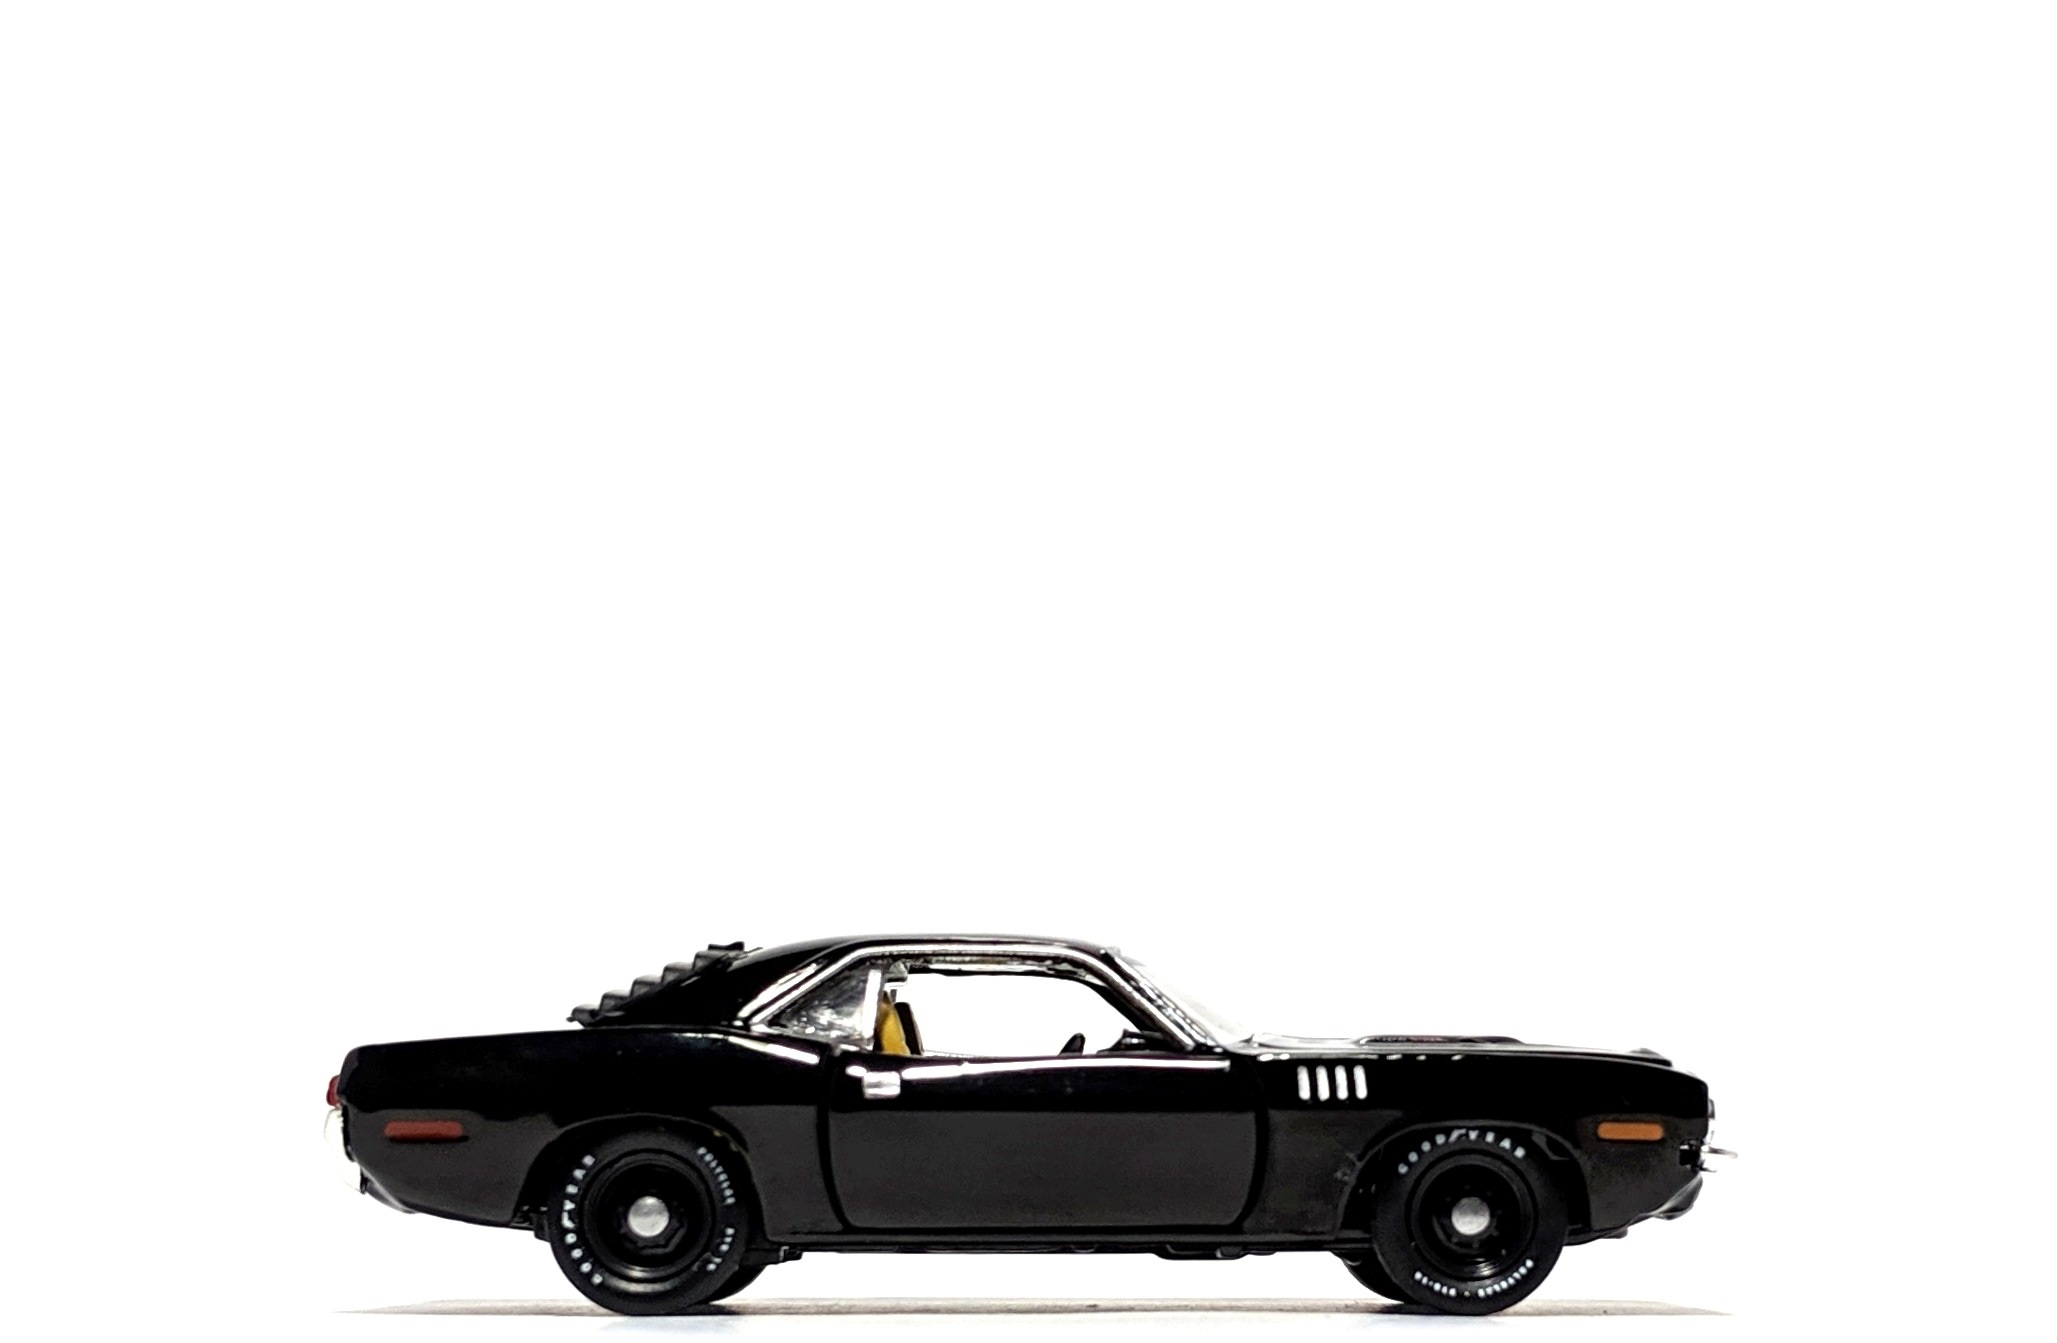 1971 Plymouth Cuda 440 6-Pack, by M2 Machines (Detroit Muscle - R46)